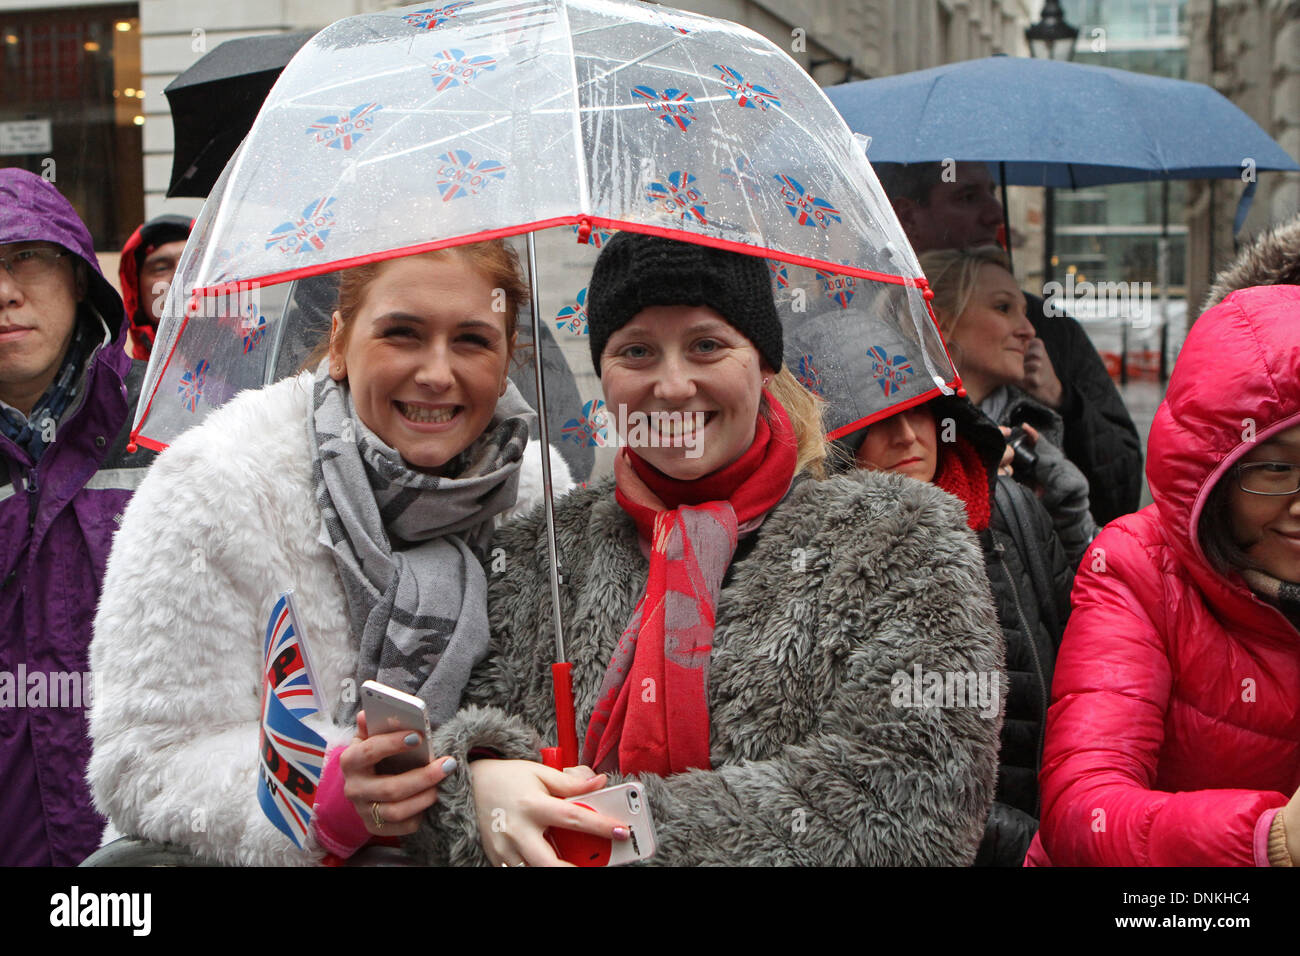 London,UK,1st January 2014,Sheltering under an umbrella at the London's New Year's Day Parade 2014 Credit: Keith Larby/Alamy Live News - Stock Image